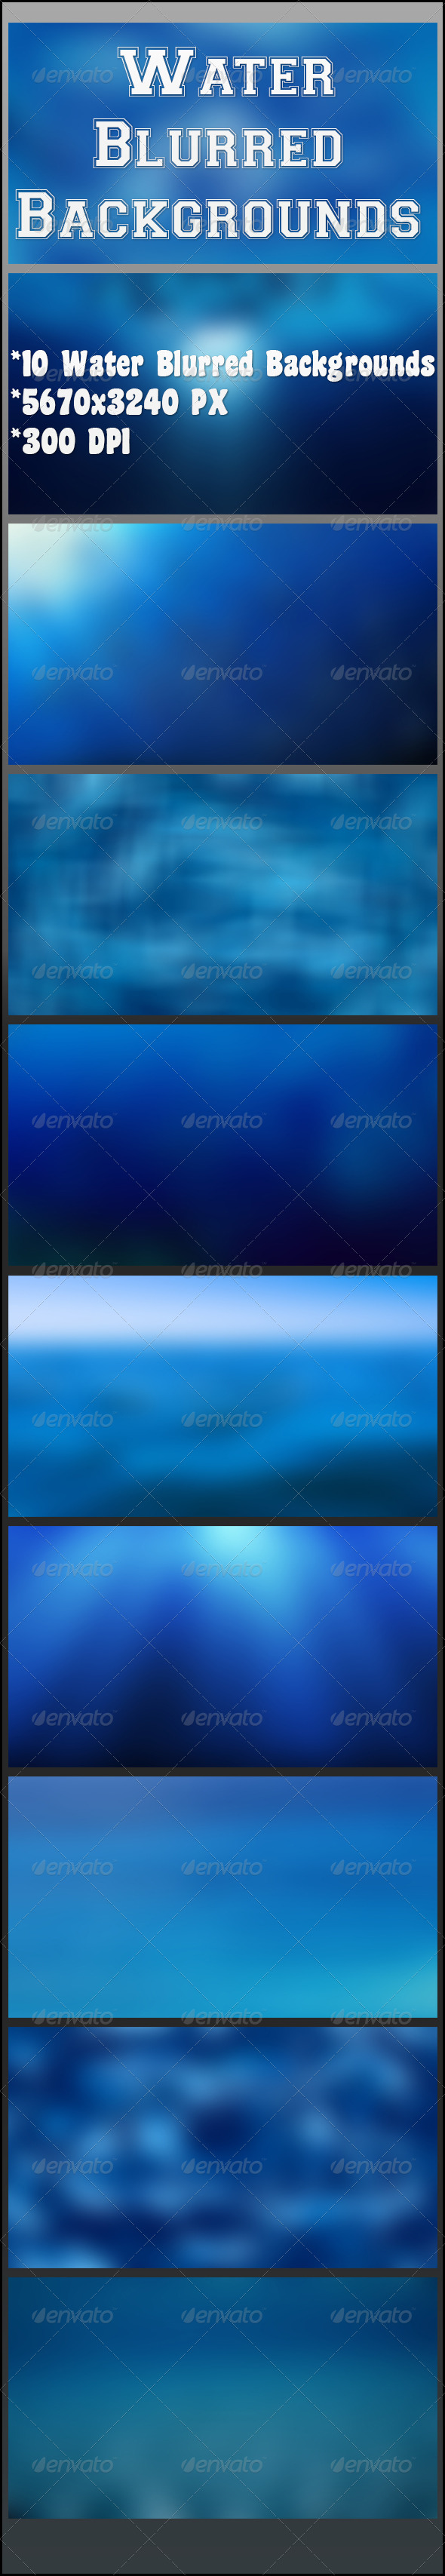 GraphicRiver Water Blurred Backgrounds 8187838